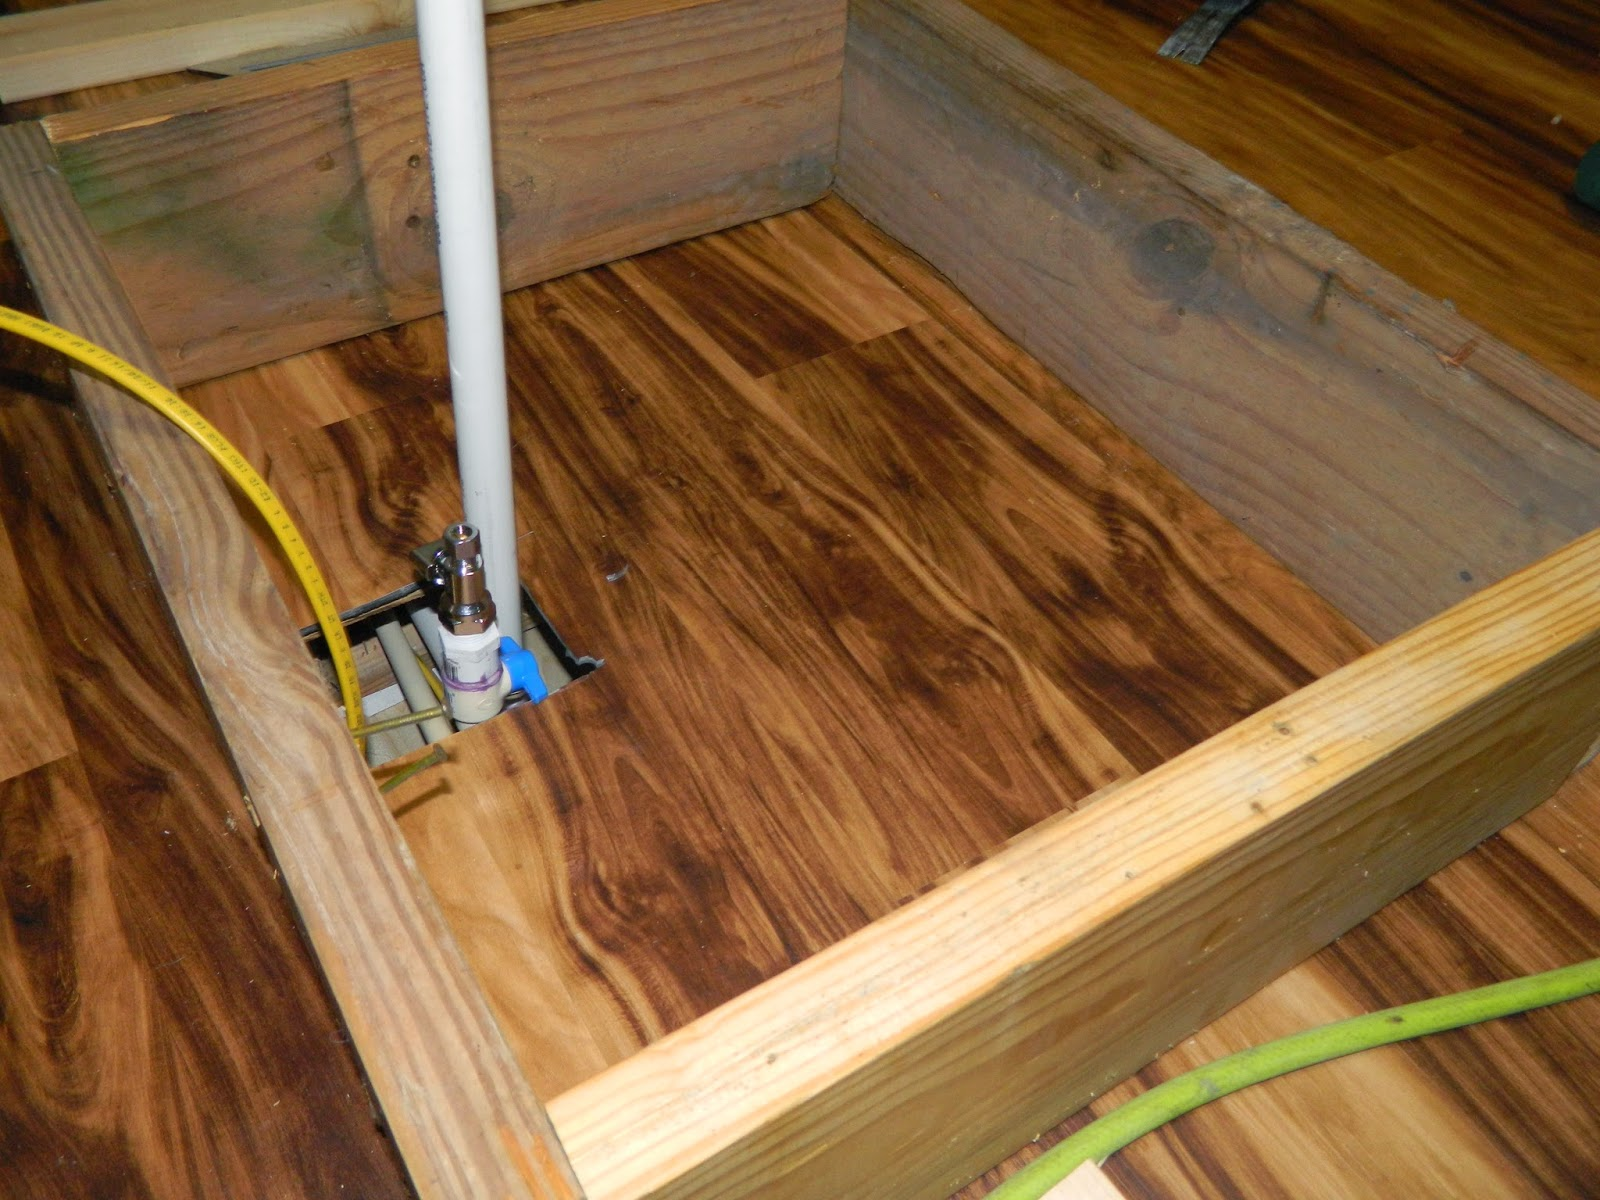 Countertop Dishwasher Craigslist : Dirty hands, Beautiful life: DIY: Butcher block island with dishwasher